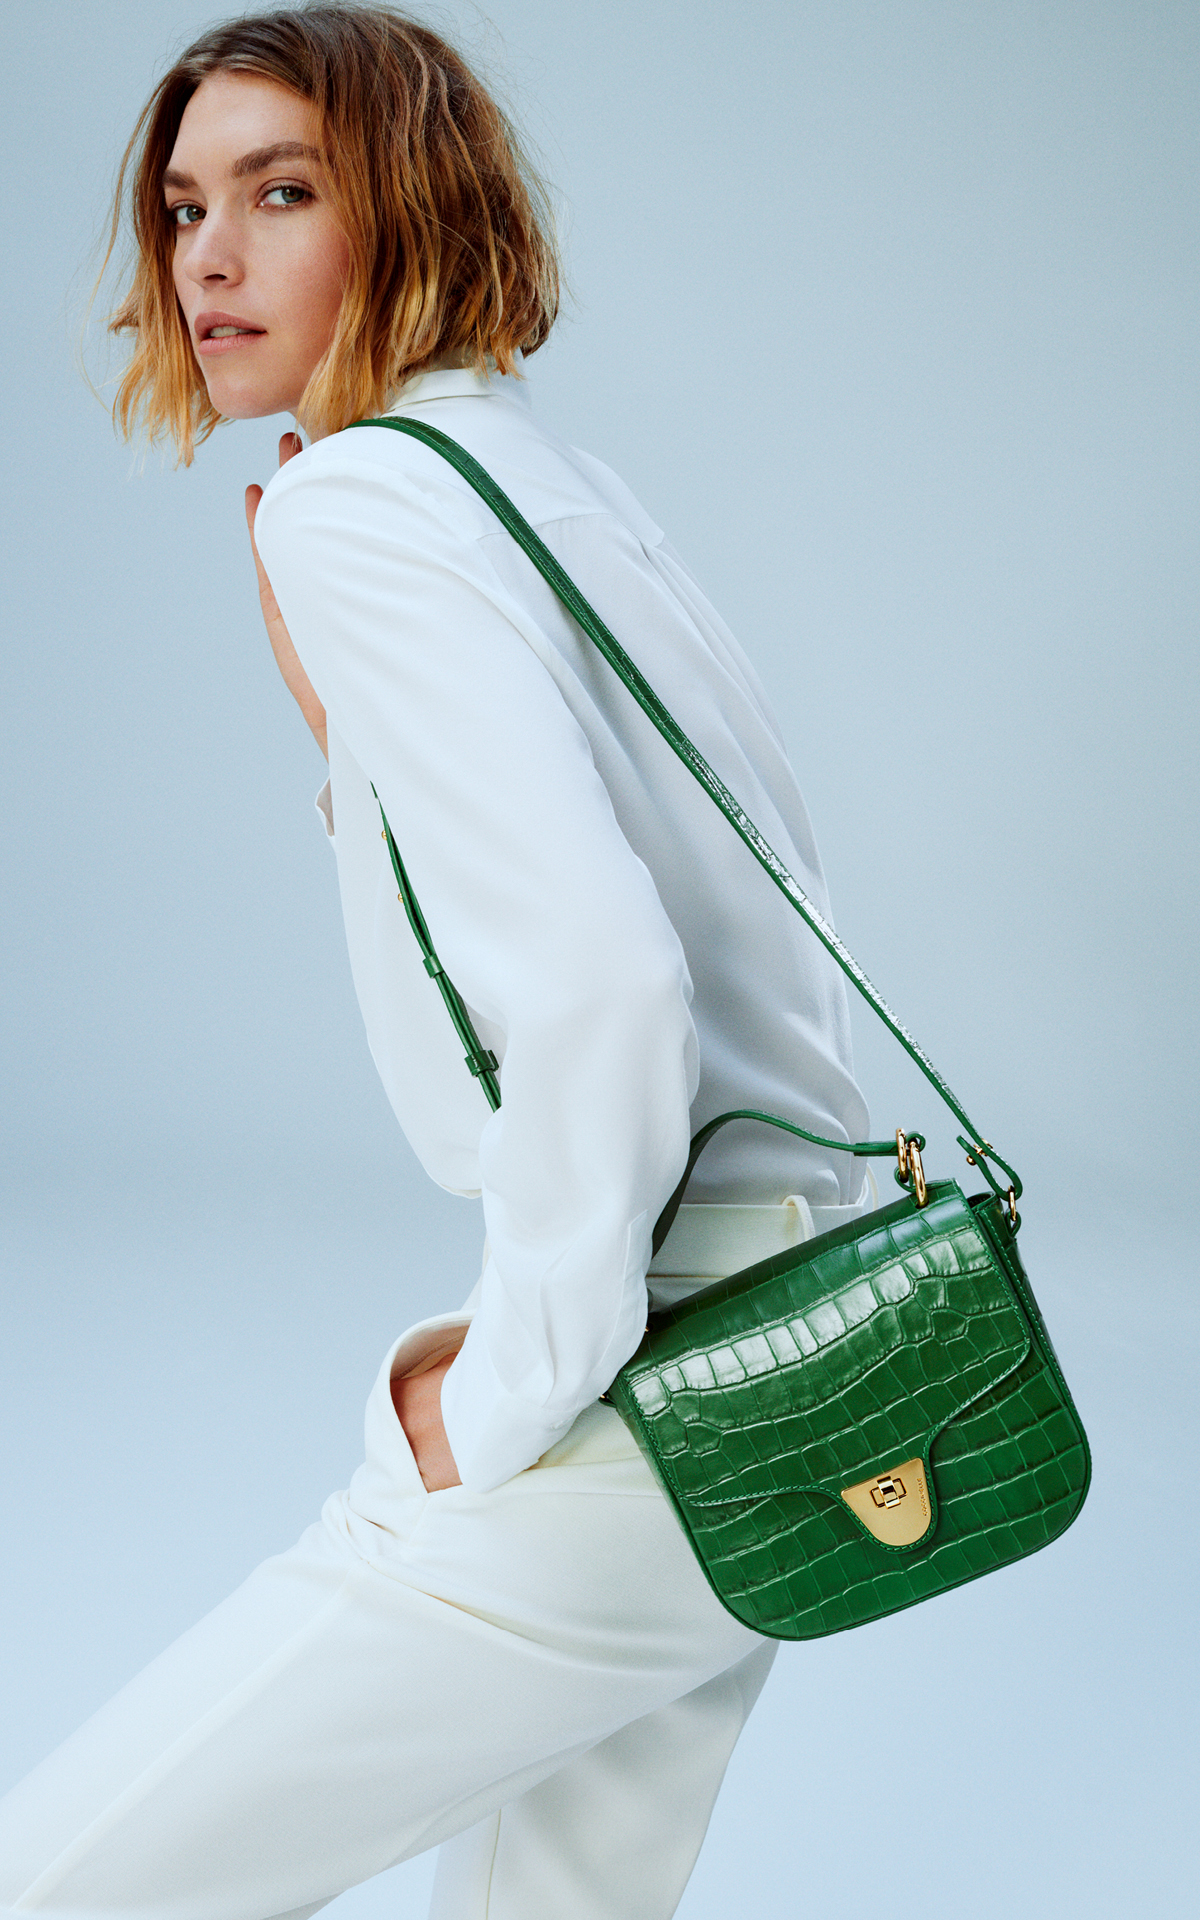 girl with a green coccinelle bag